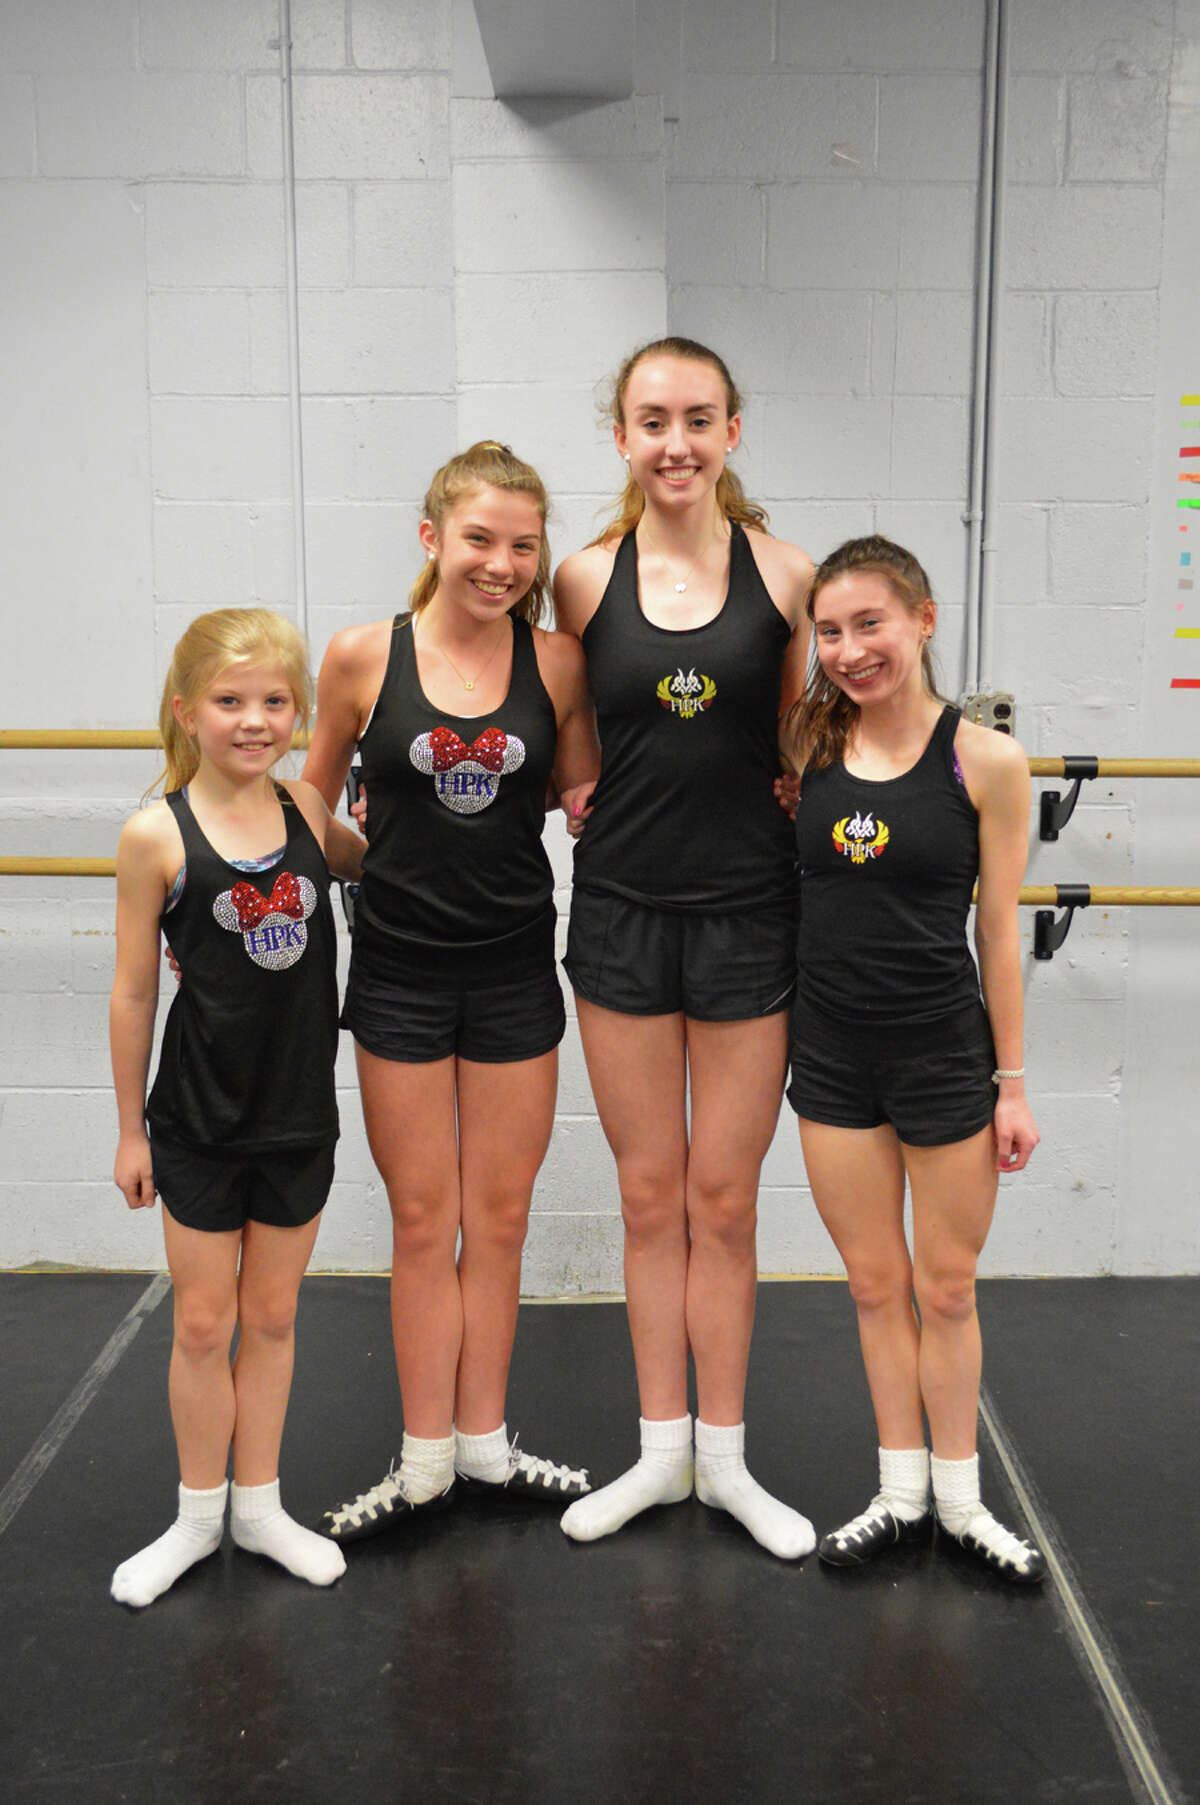 Dancers, Leighton Busby, Bridget Hillmann, Shannon Jordan and Fiona Hickey will compete in the the Irish dance competition. - Contributed photo